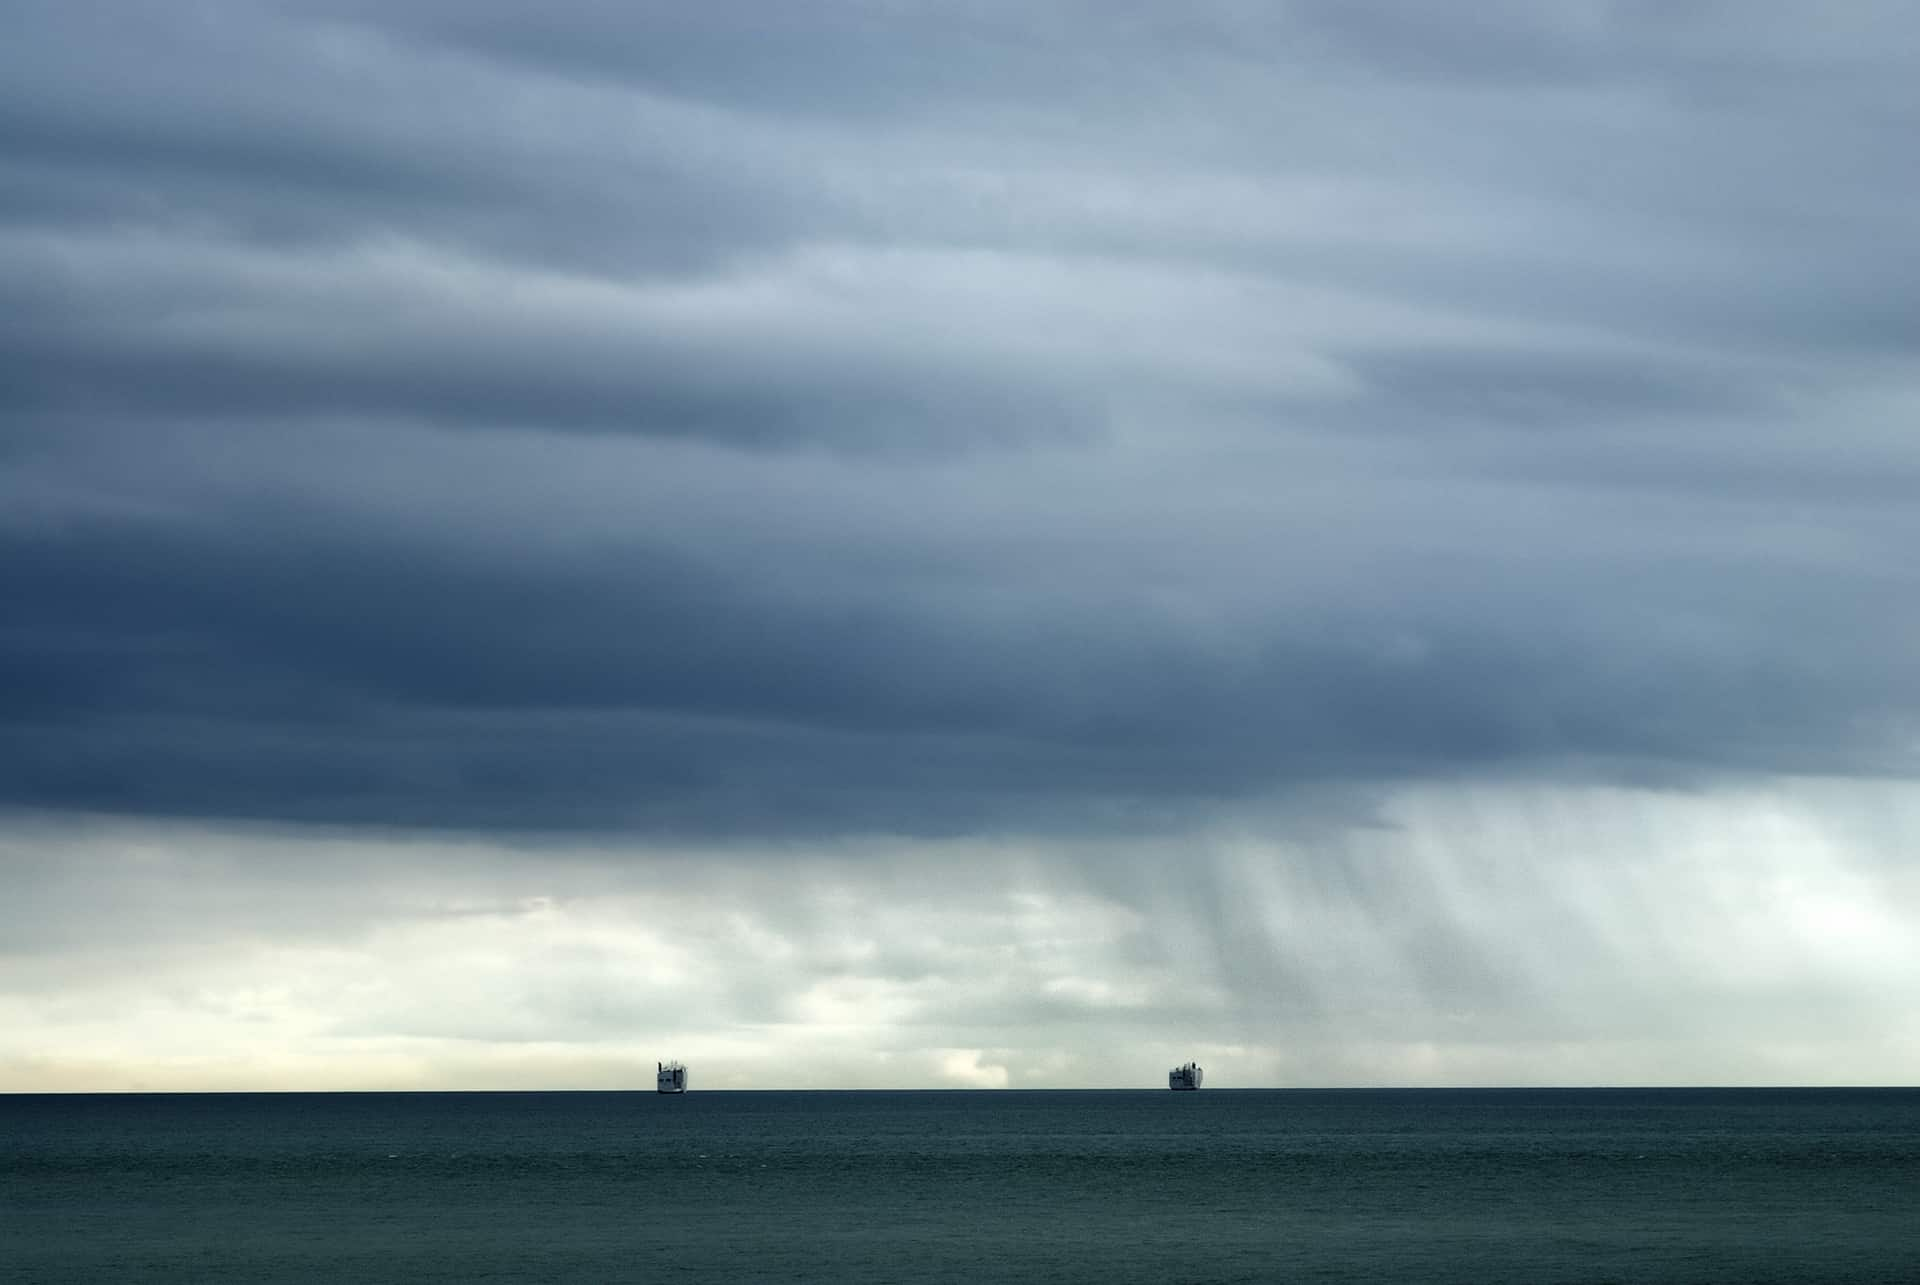 Rainclouds and two tankers at sea off the coast of Bembridge, Isle of Wight , england, UK